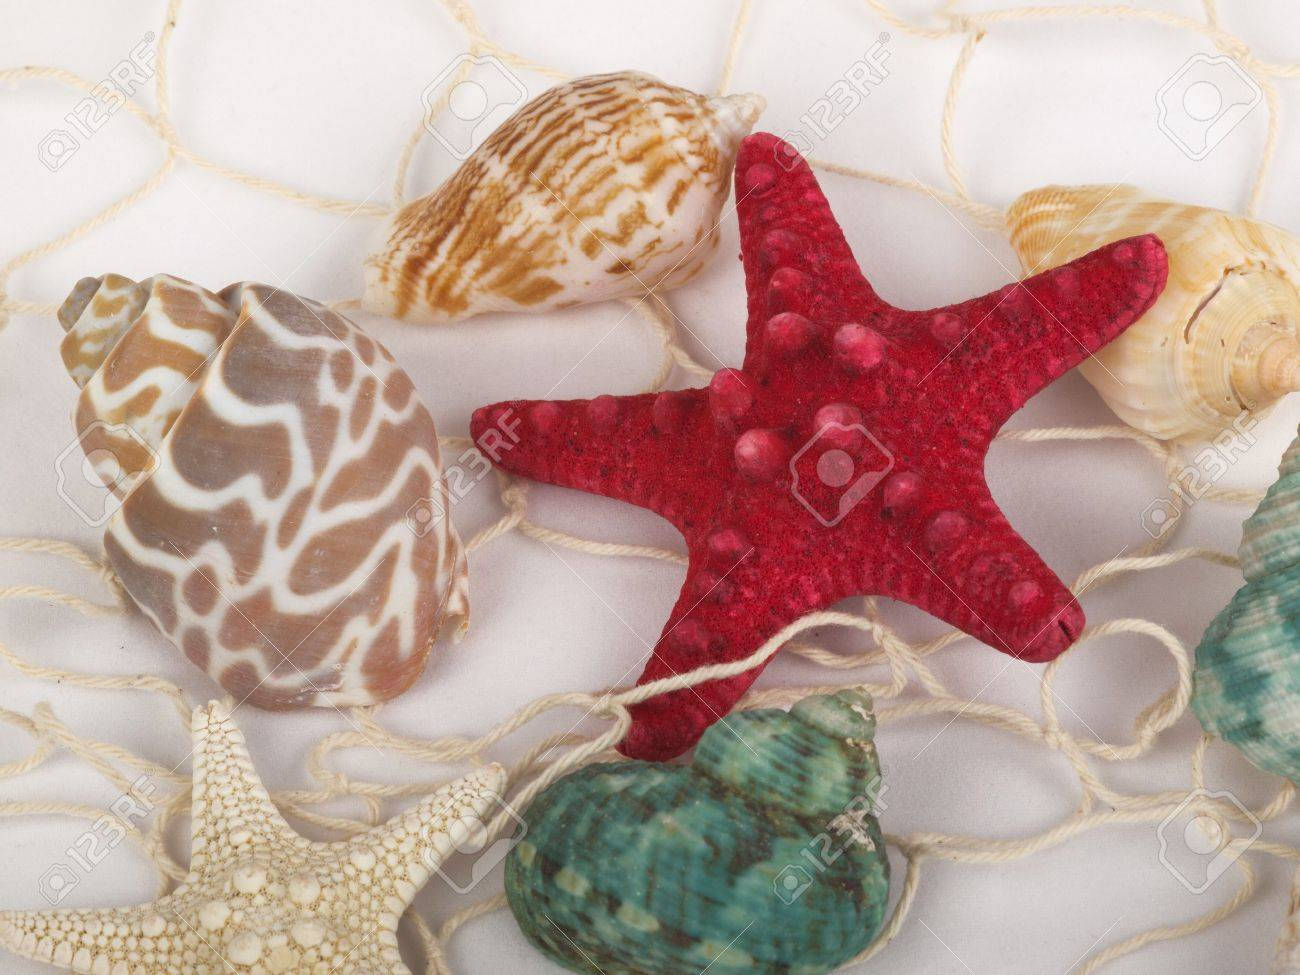 Decorative Fish Netting Seashells And Starfish Caught In A White Fishing Net For Use